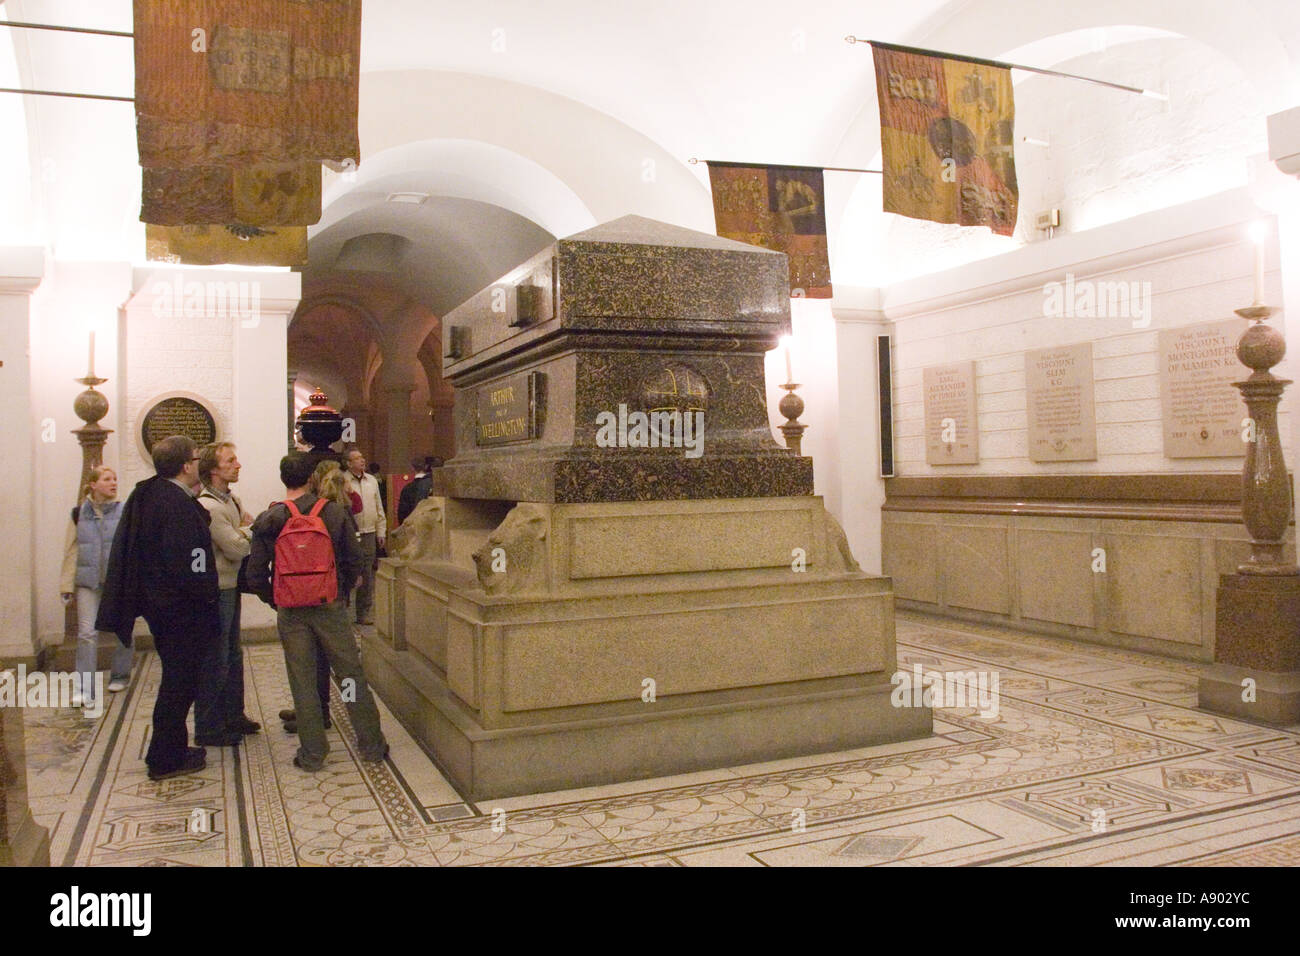 he tomb of Arthur, Duke of Wellington in the Crypt of St Paul's Cathedral London GB UK - Stock Image